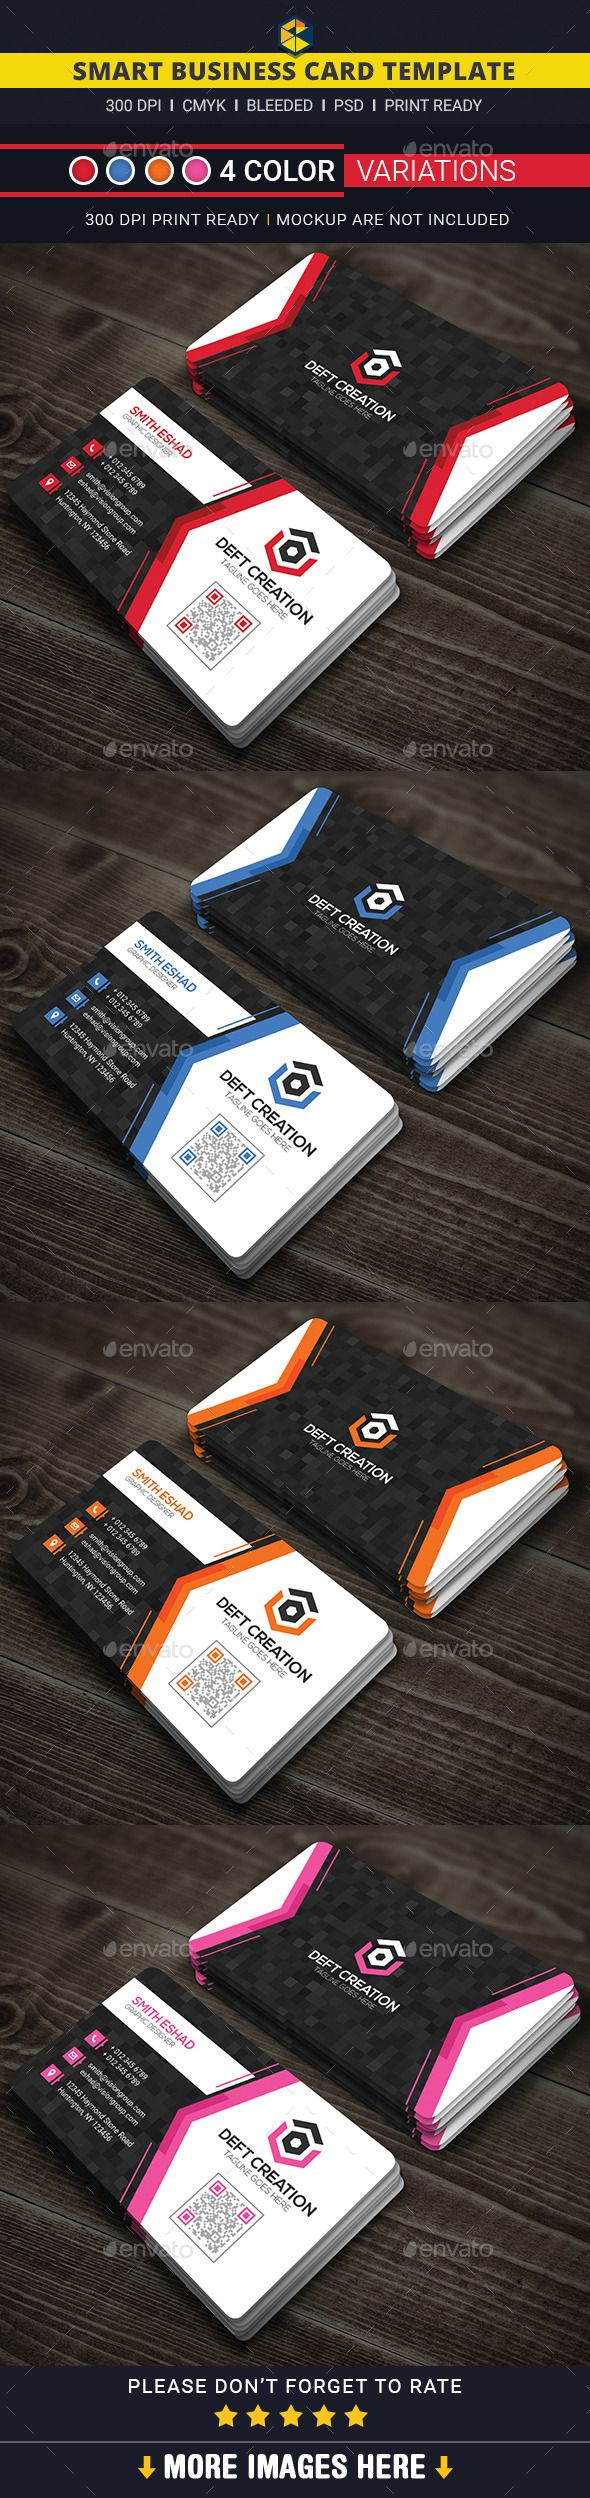 103 best business card templates images on pinterest business card smart business card template design download httpgraphicriver flashek Choice Image